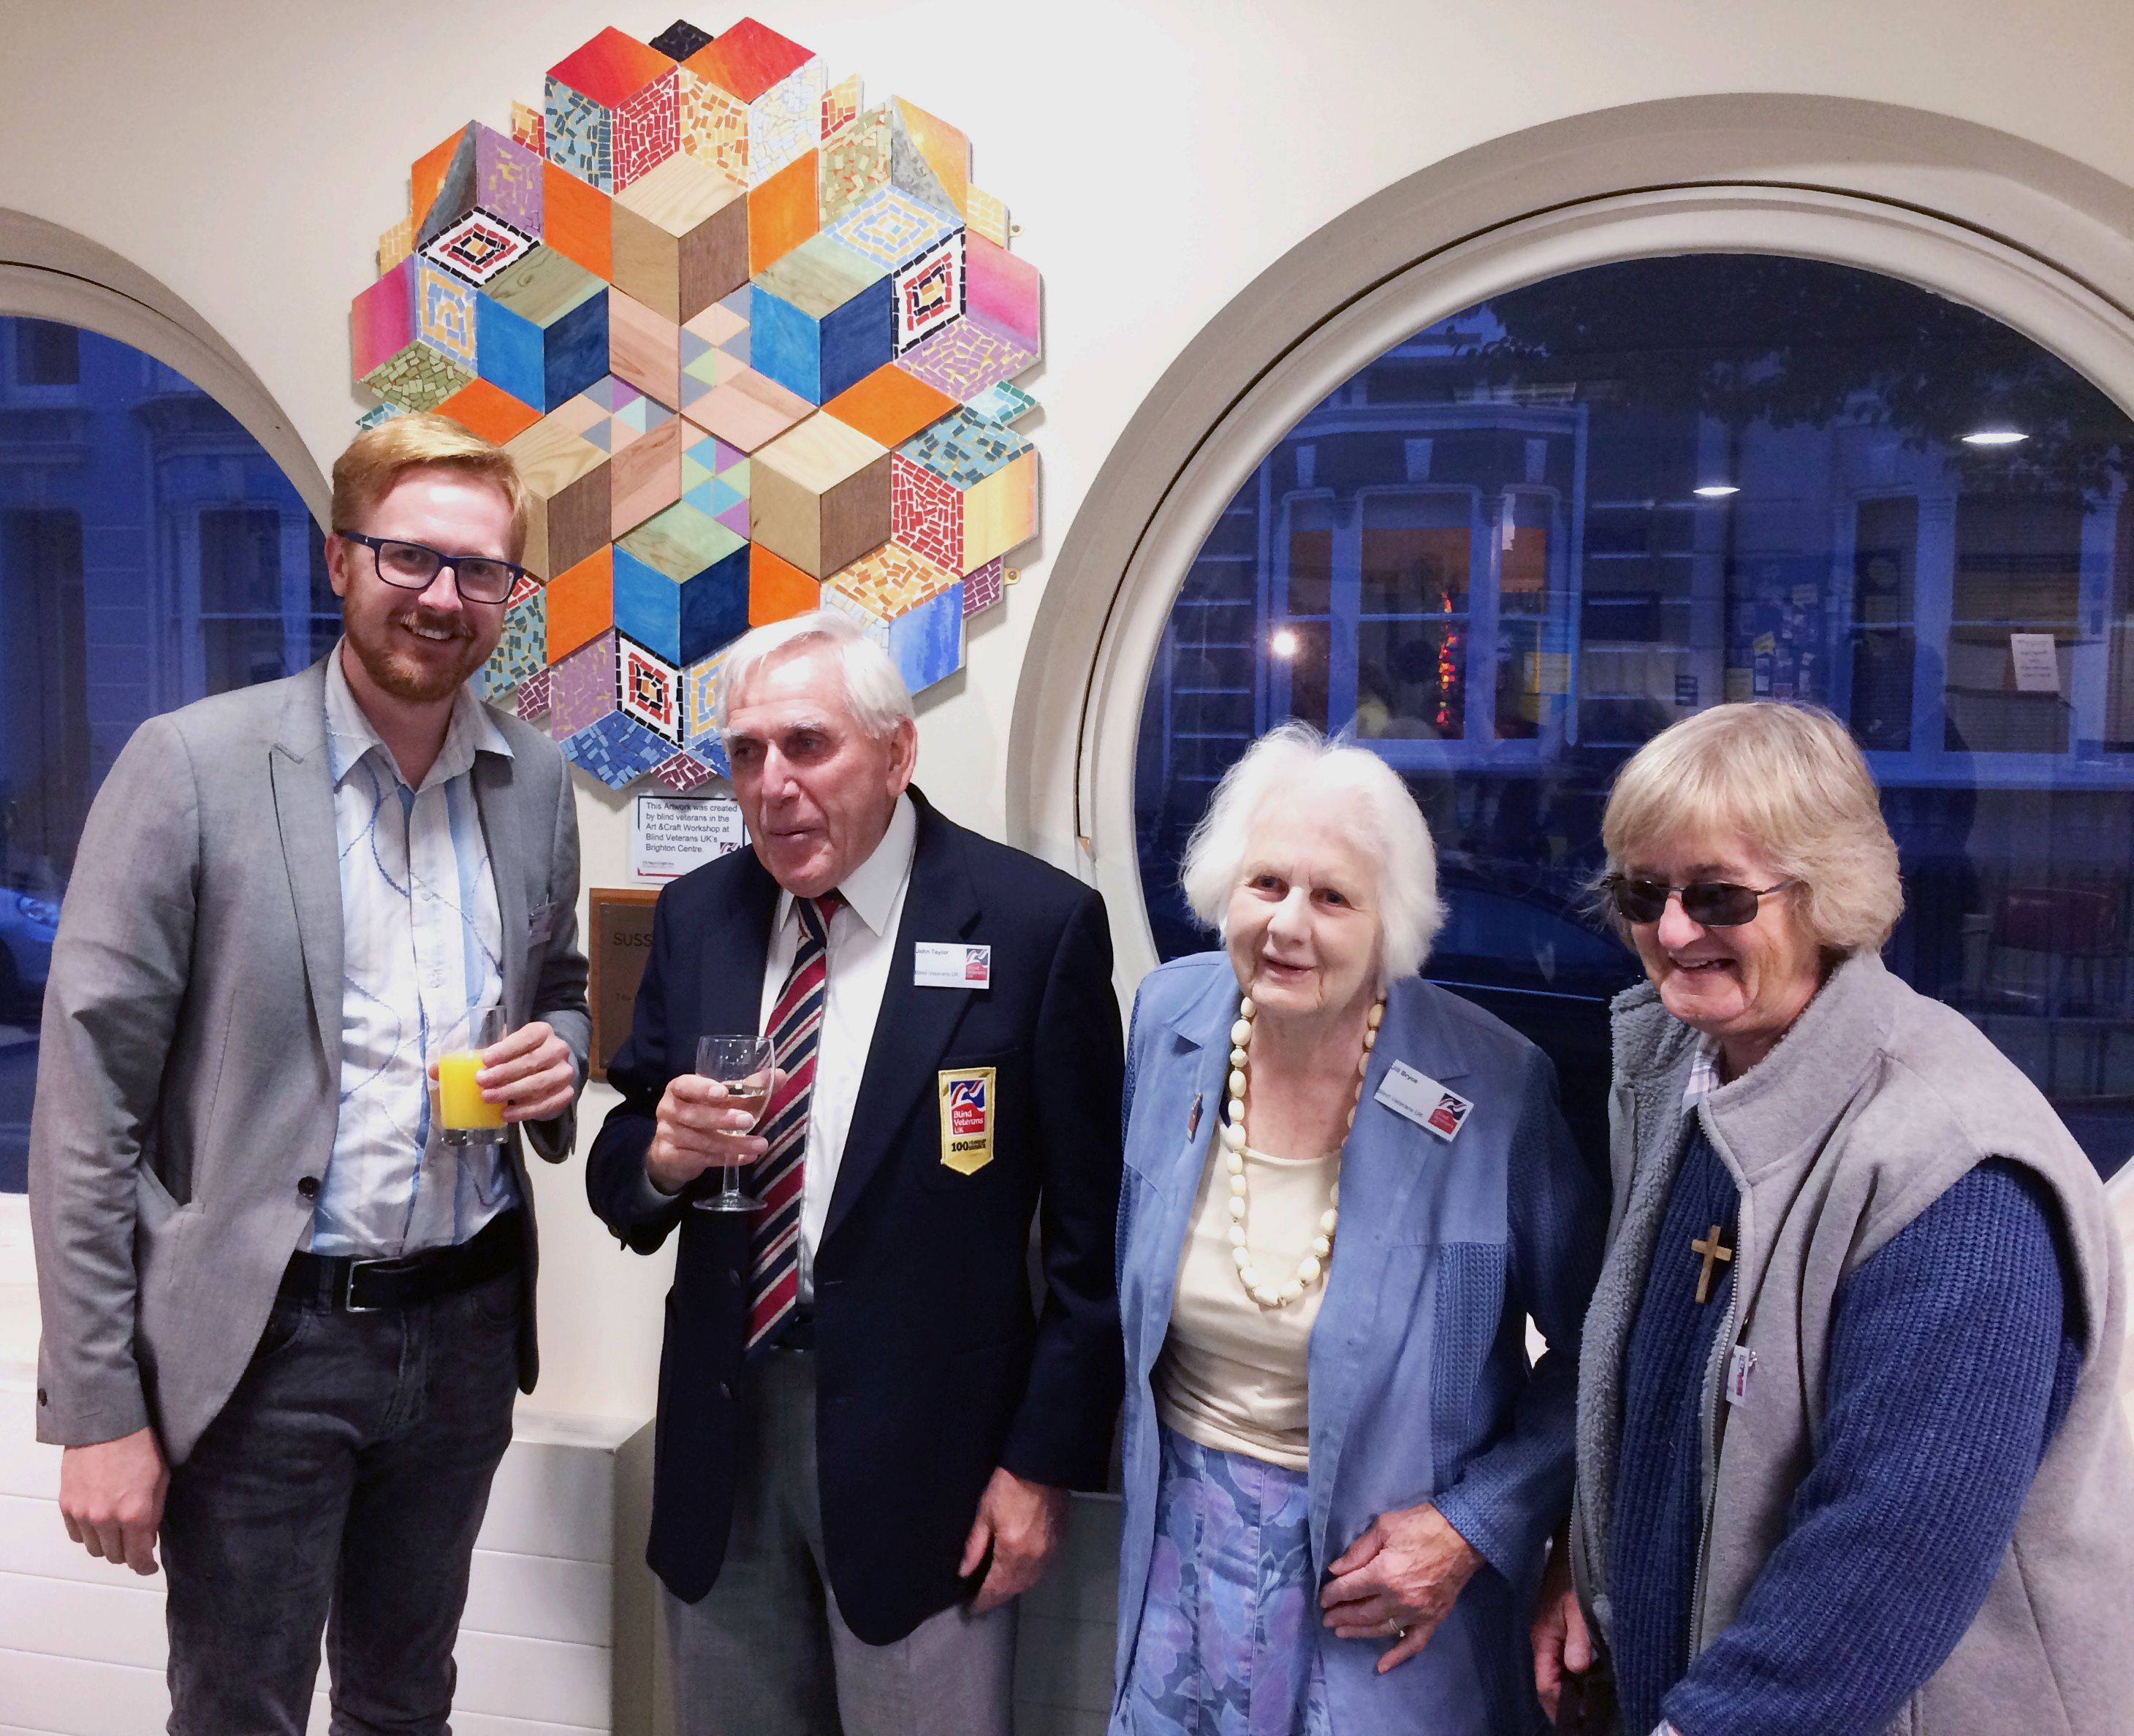 Lloyd Russell-Moyle MP with blind veterans John Taylor, Jill Bryce and Carole Sharpe